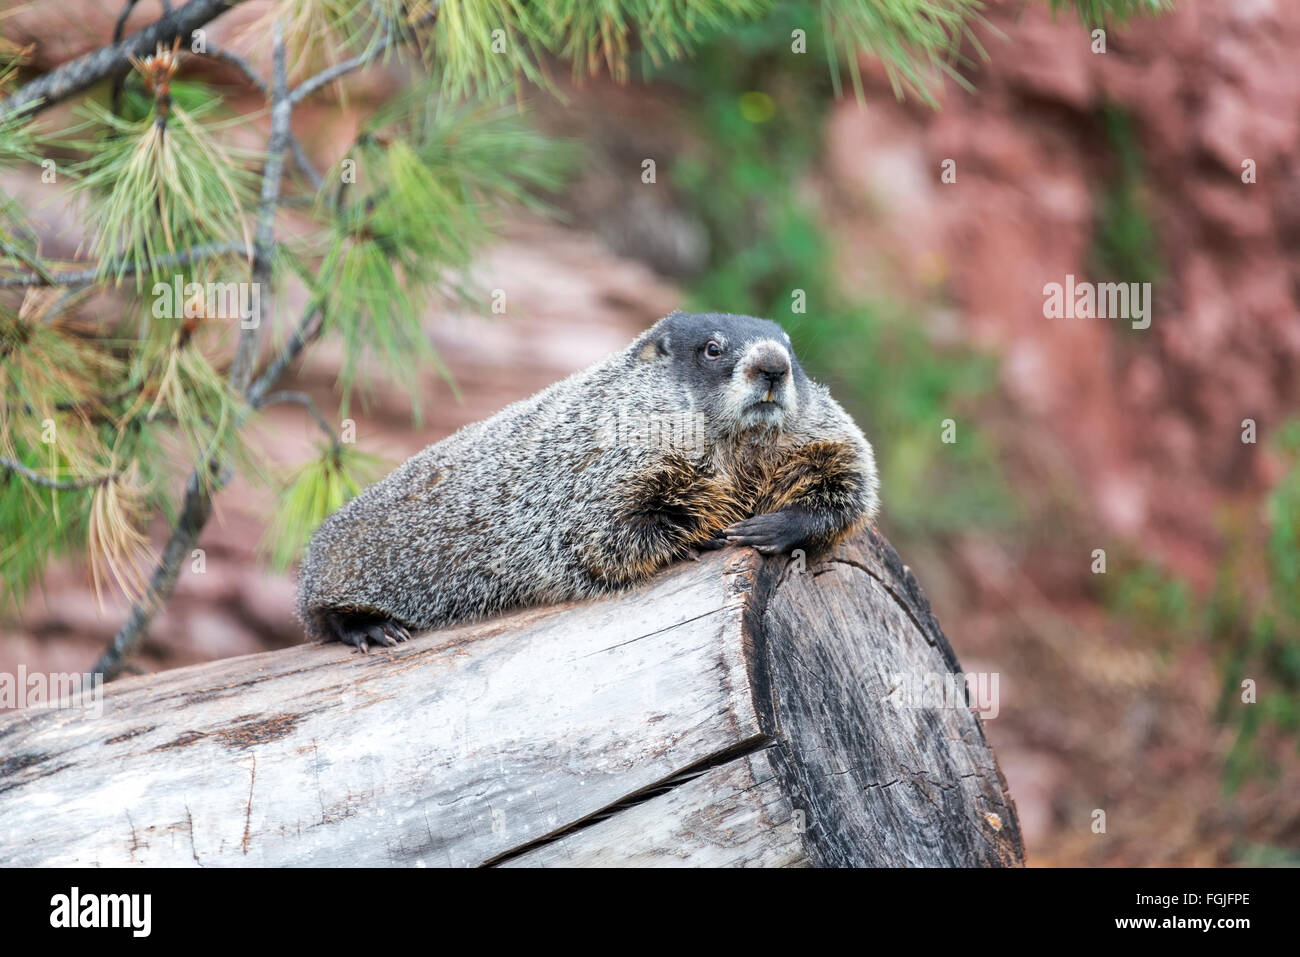 View of a groundhog relaxing on a log - Stock Image